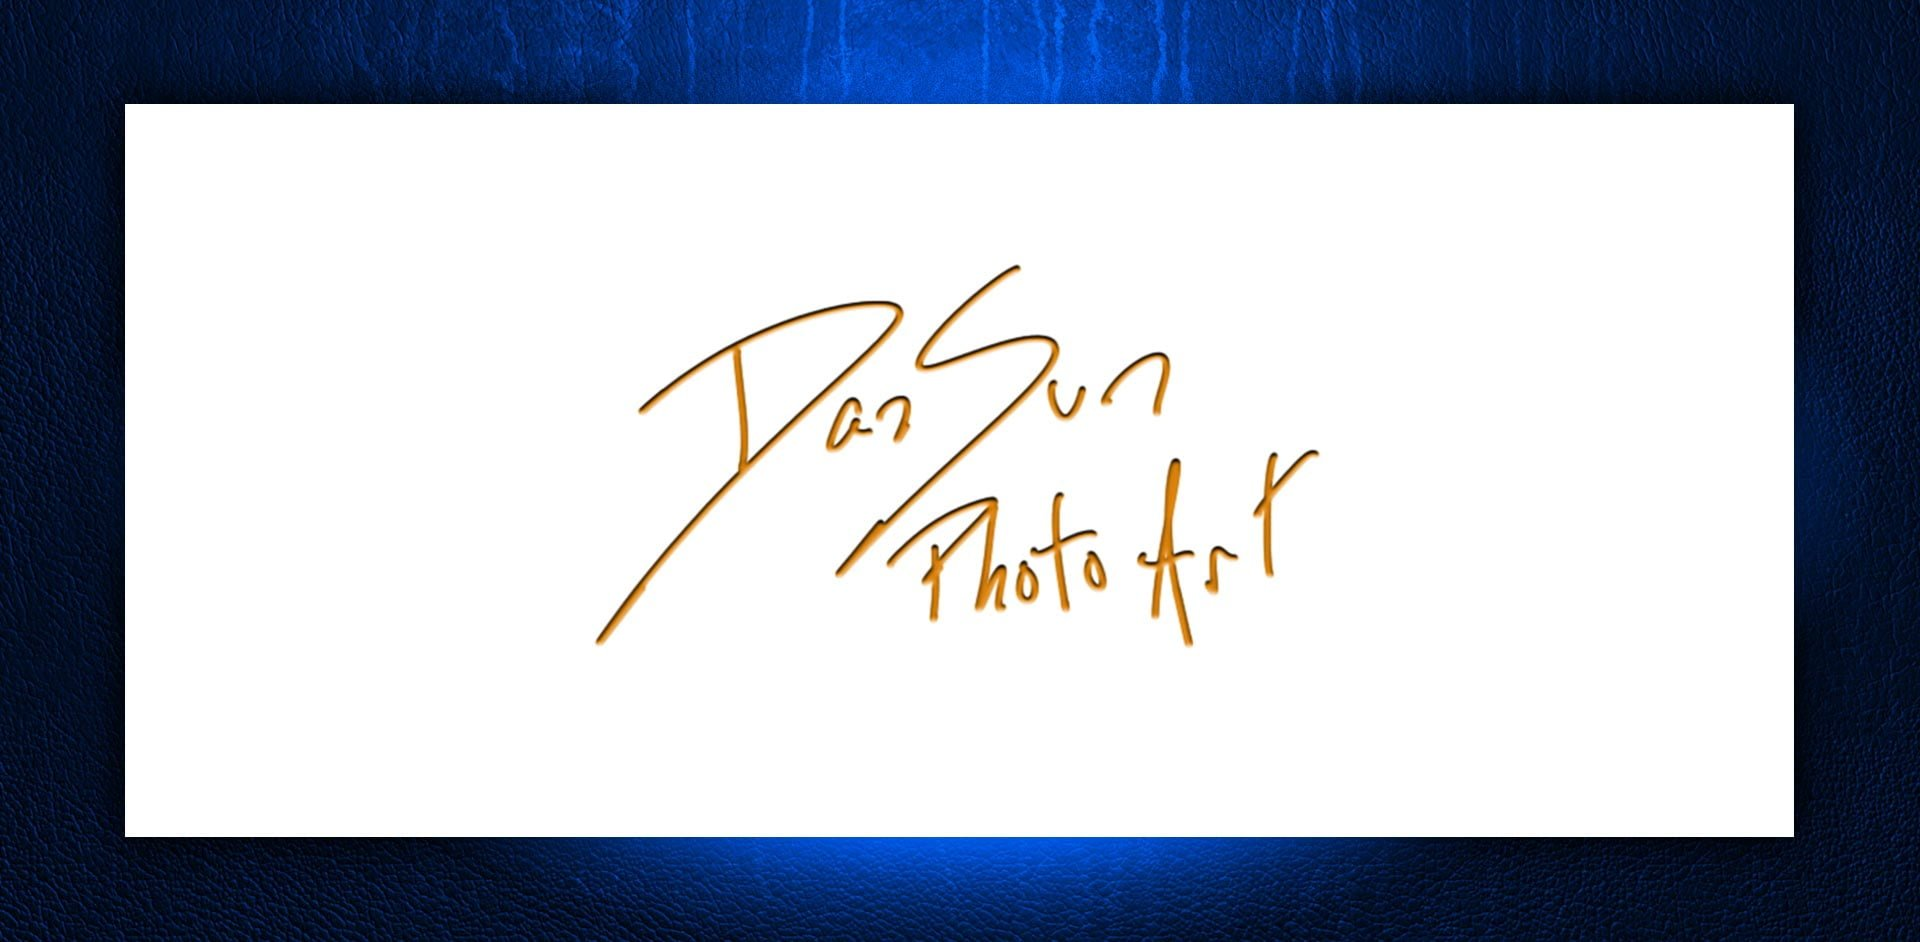 DanSun Photo Art